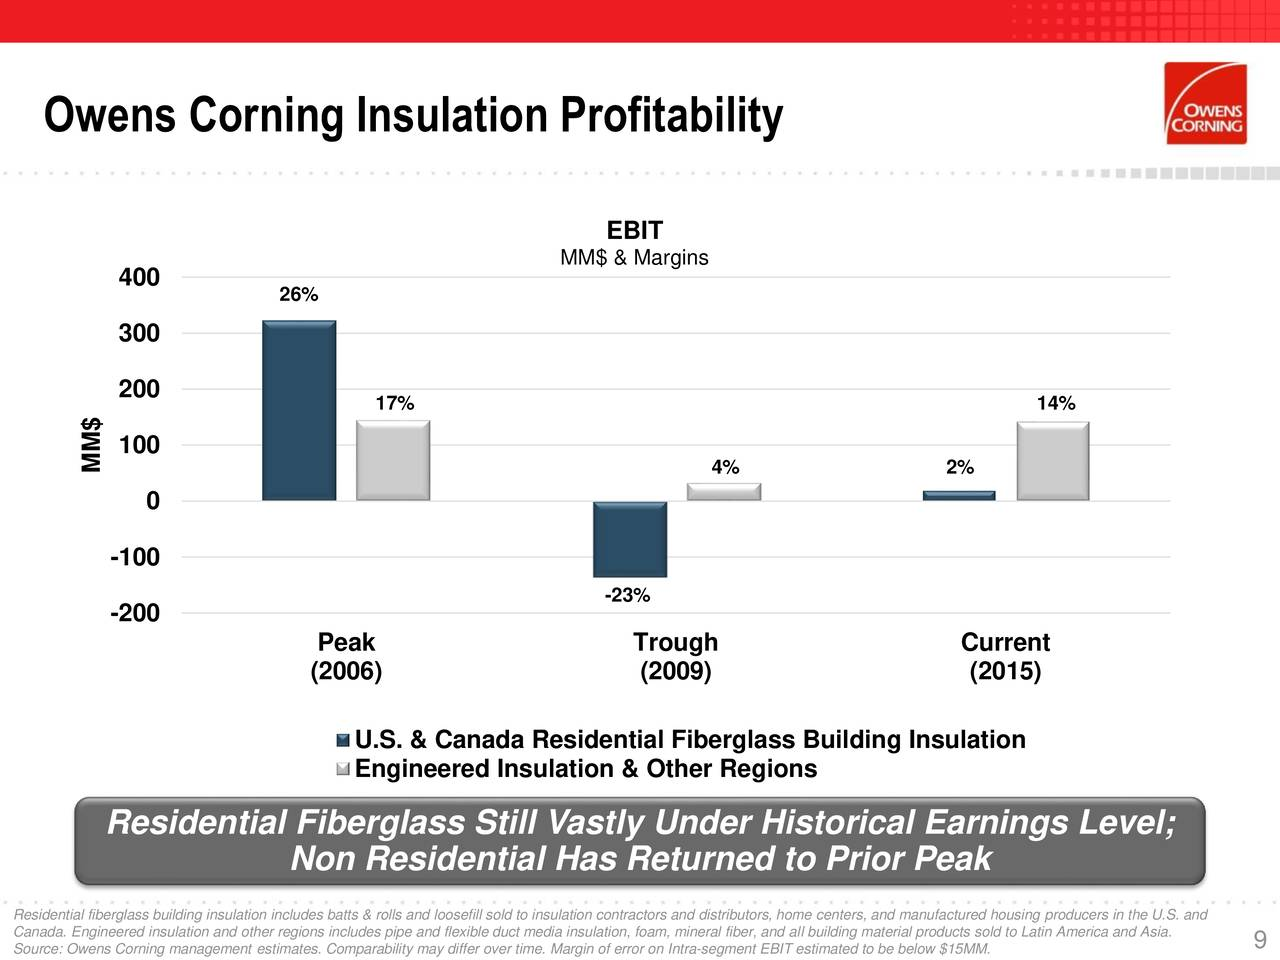 Owens Corning 2016 Q4 Results Earnings Call Slides